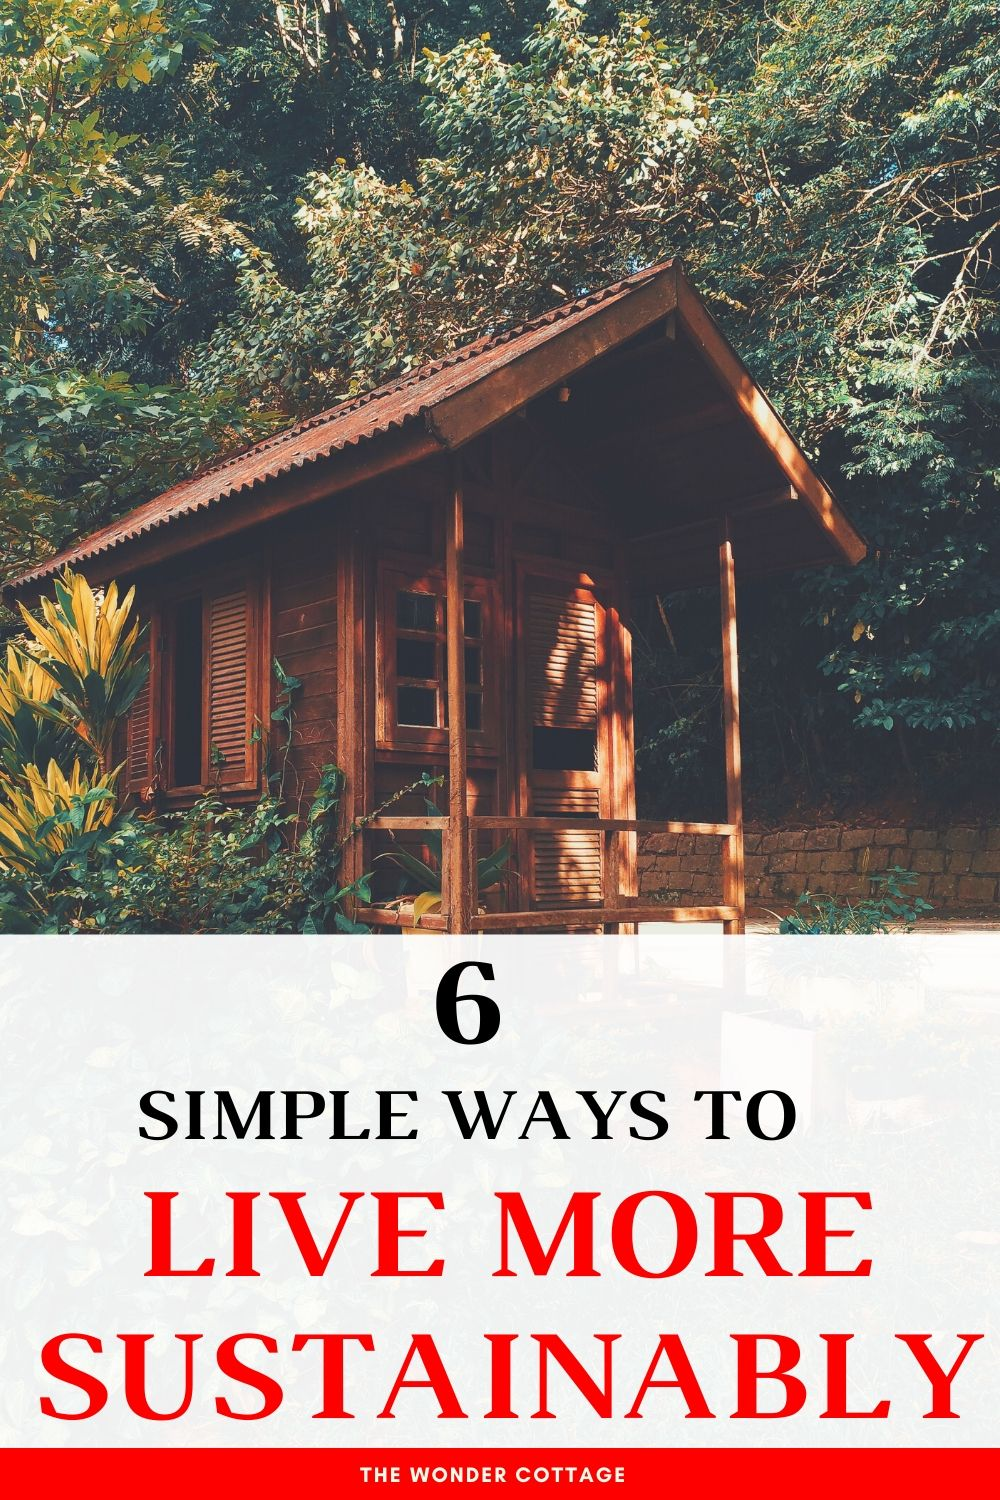 6 simple ways to live sustainably